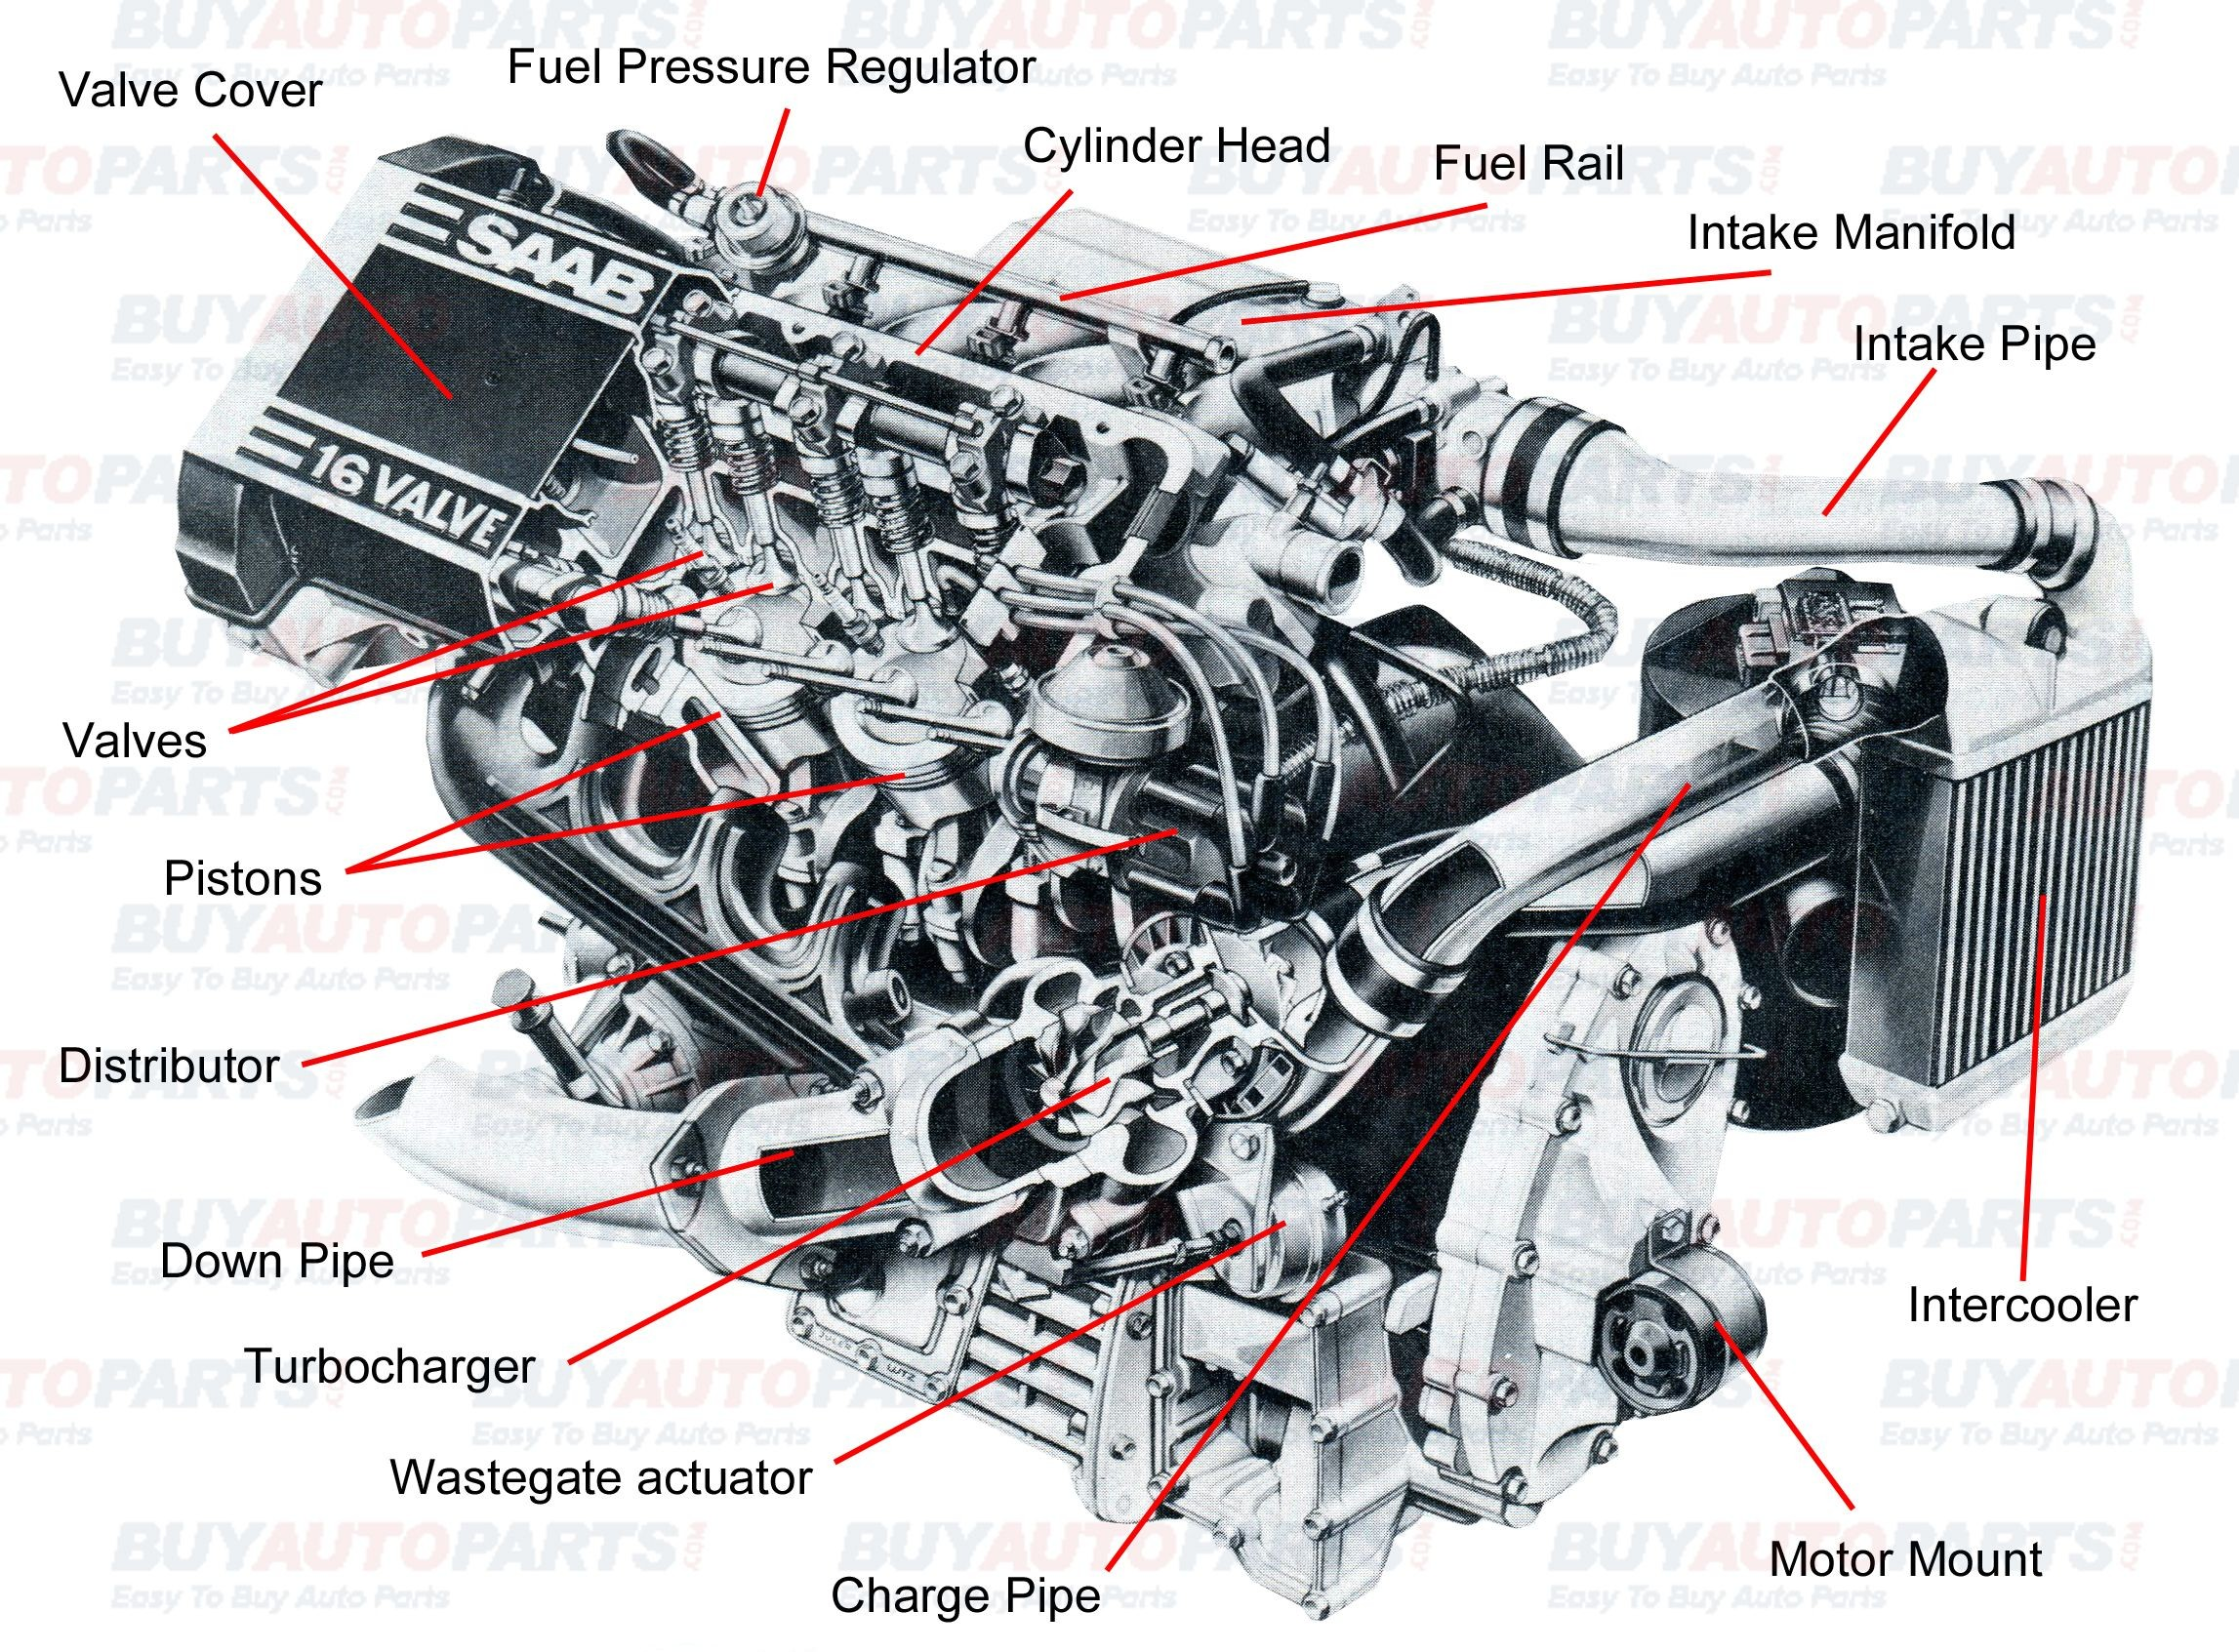 Car Battery Parts Diagram Pin by Jimmiejanet Testellamwfz On What Does An Engine with Turbo